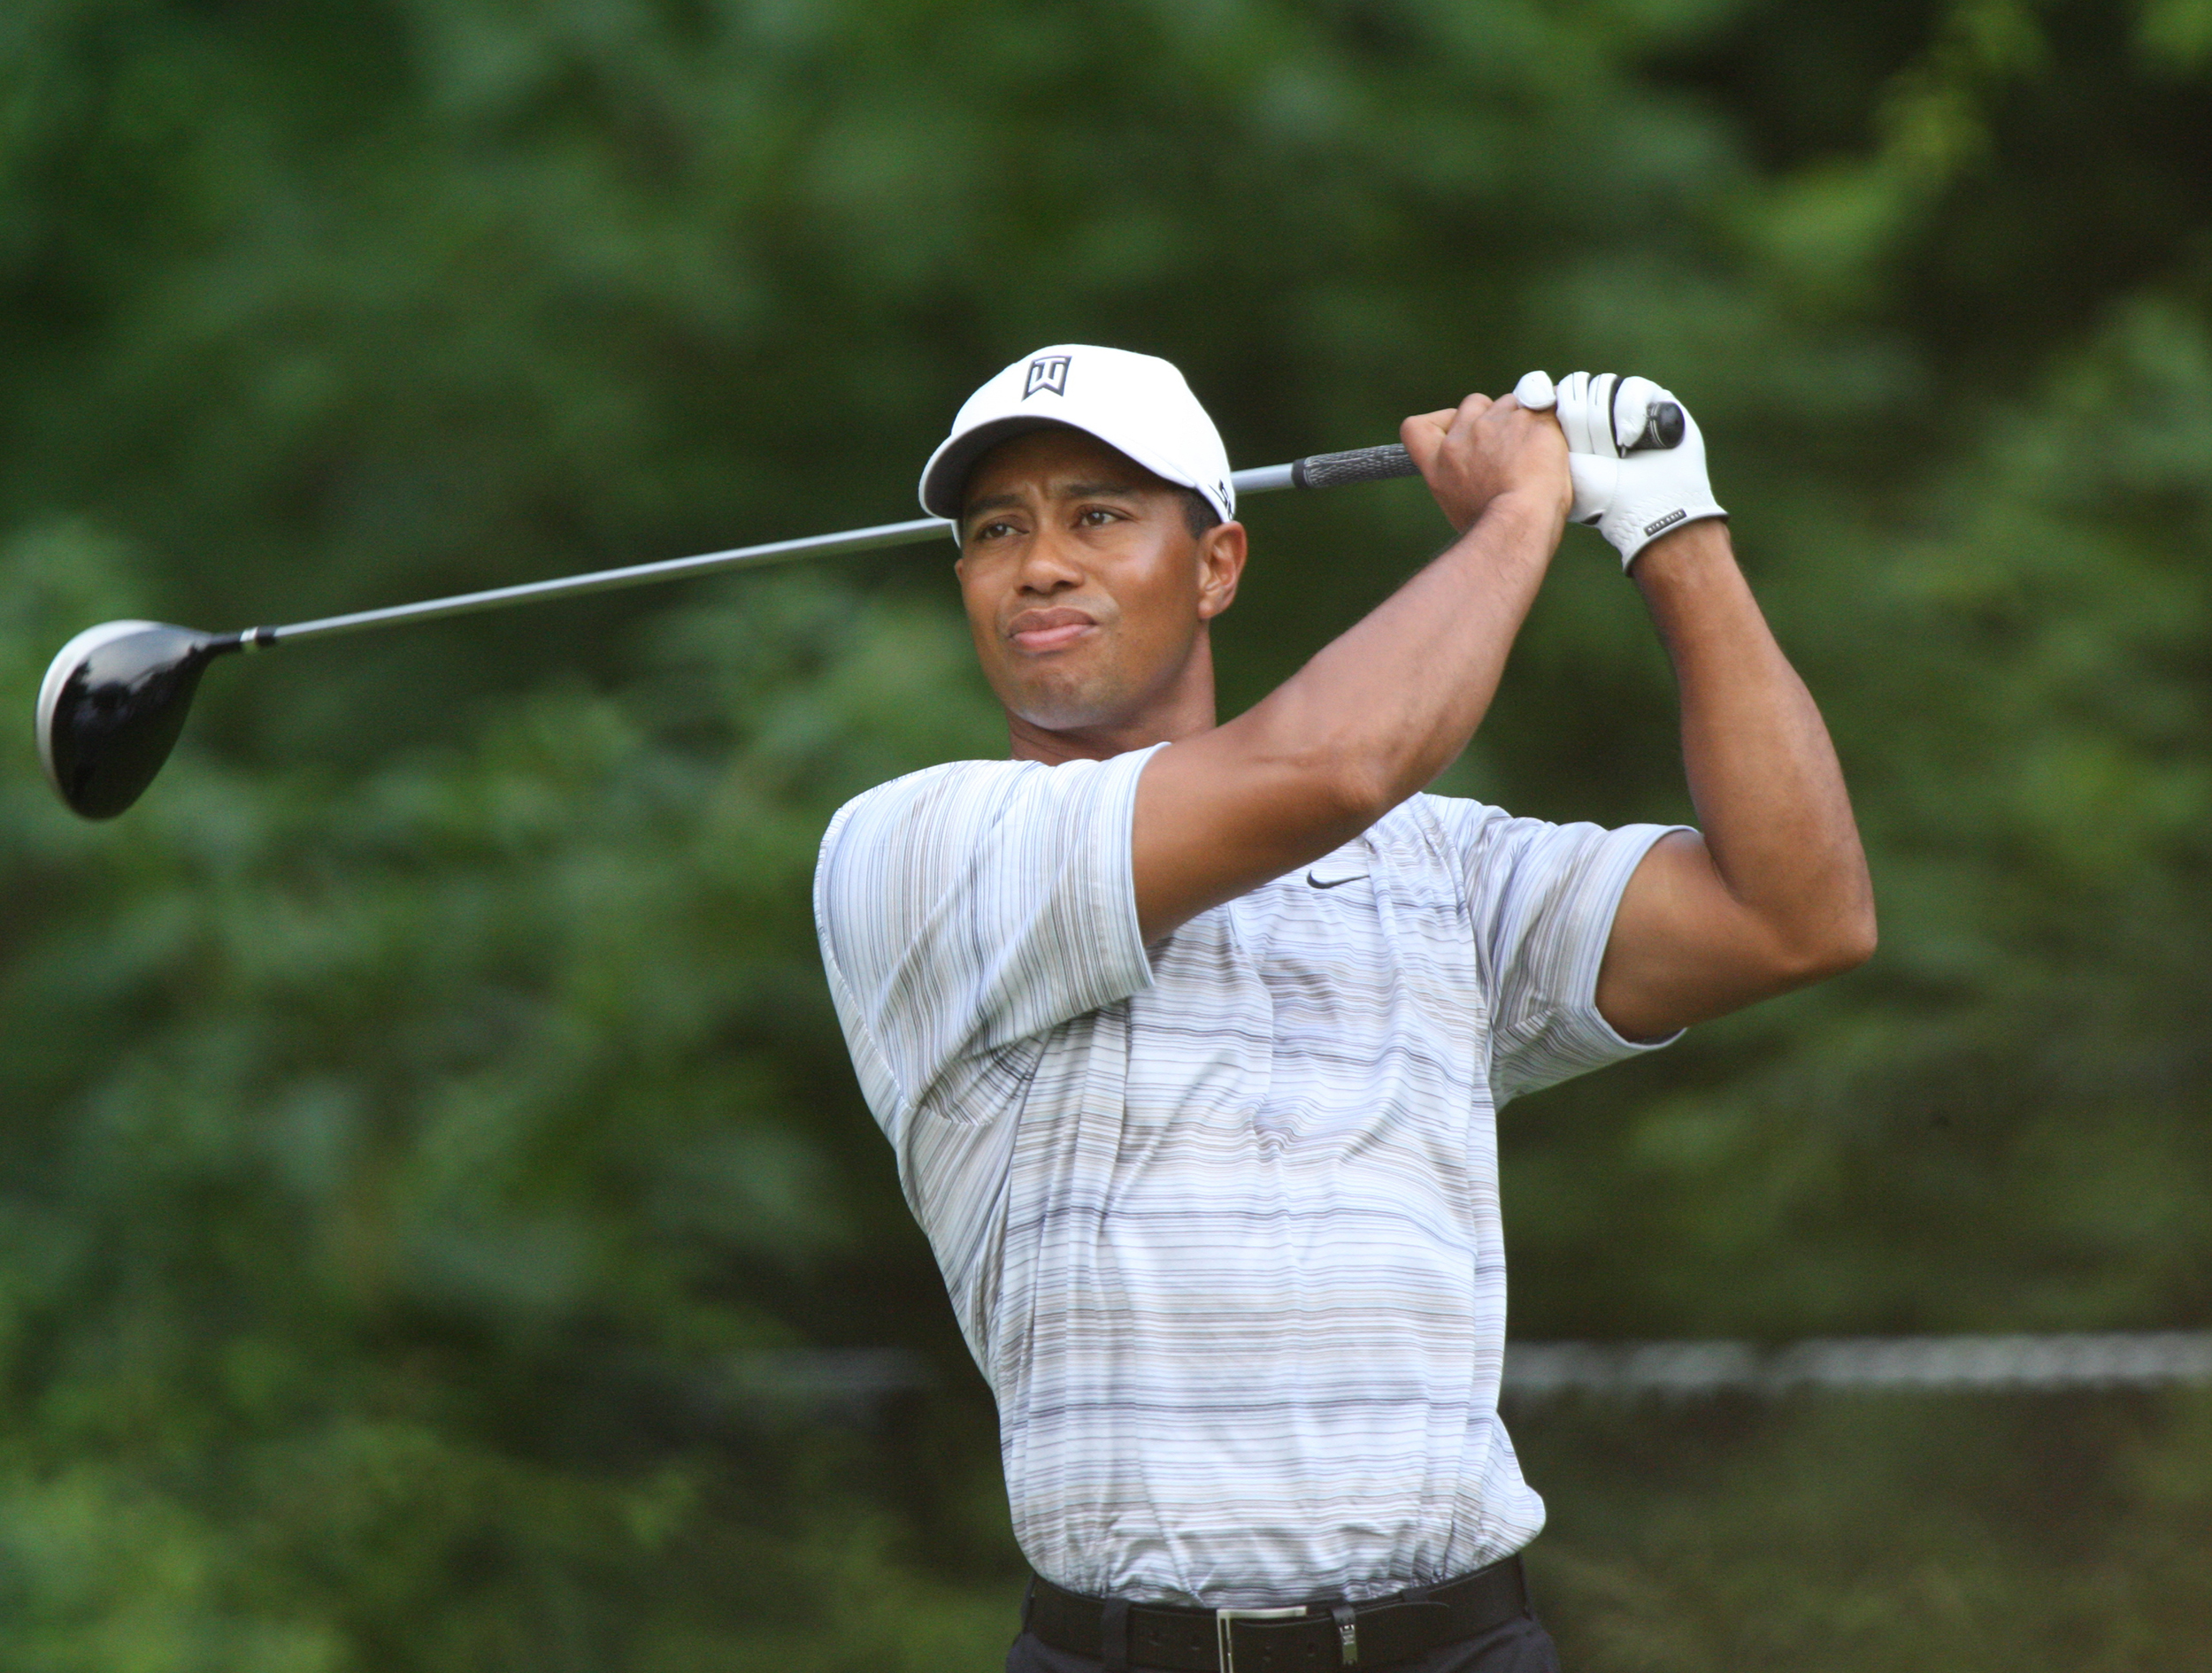 Golfer Tiger Woods (pictured above) follows through on his swing at an event in 2007. Woods won the Masters for the first time in 14 years on Sunday April 14 (courtesy of Creative Commons).